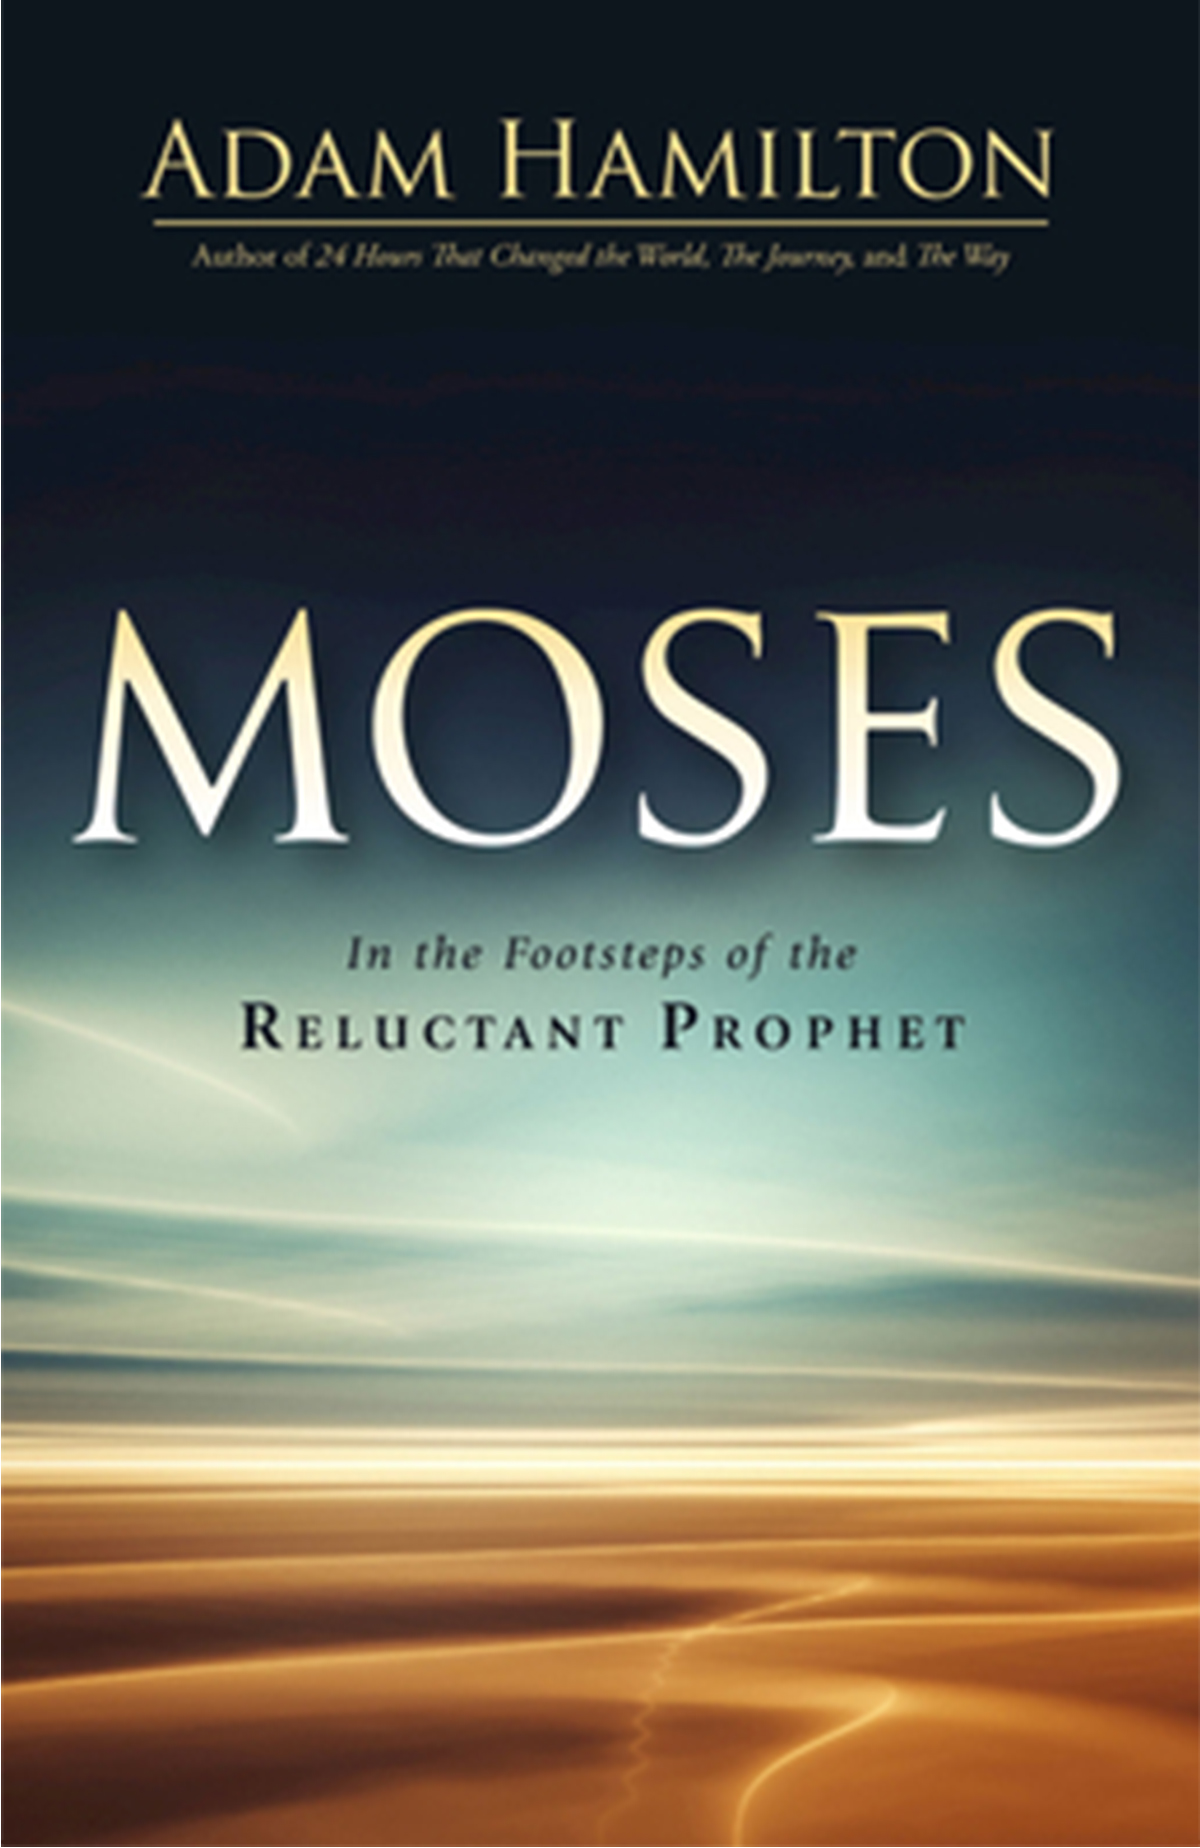 moses book cover